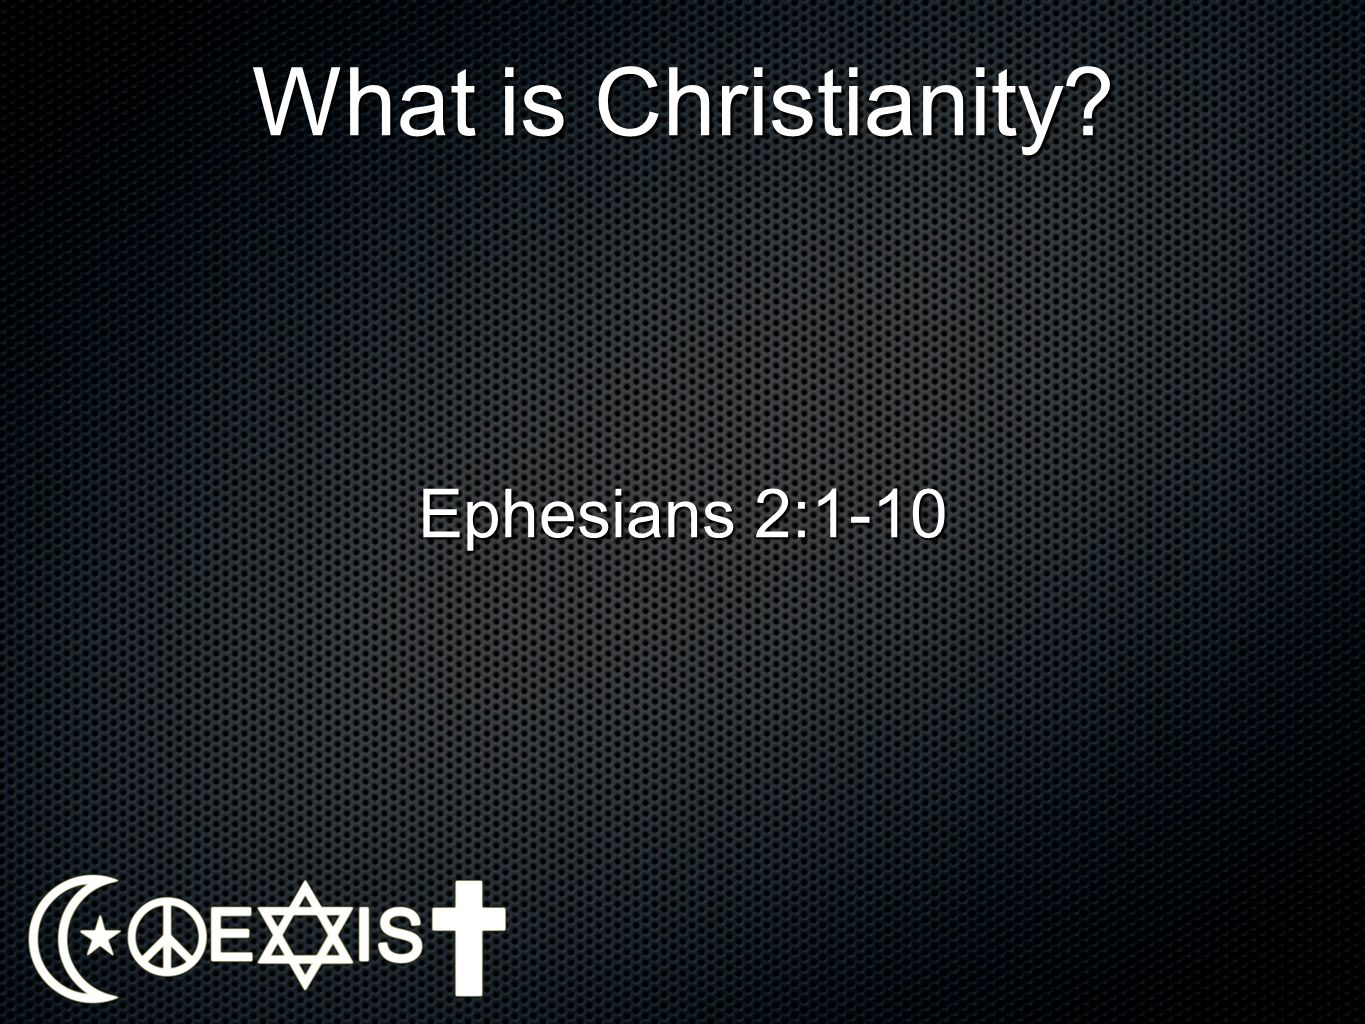 What is Christianity? Ephesians 2:1-10